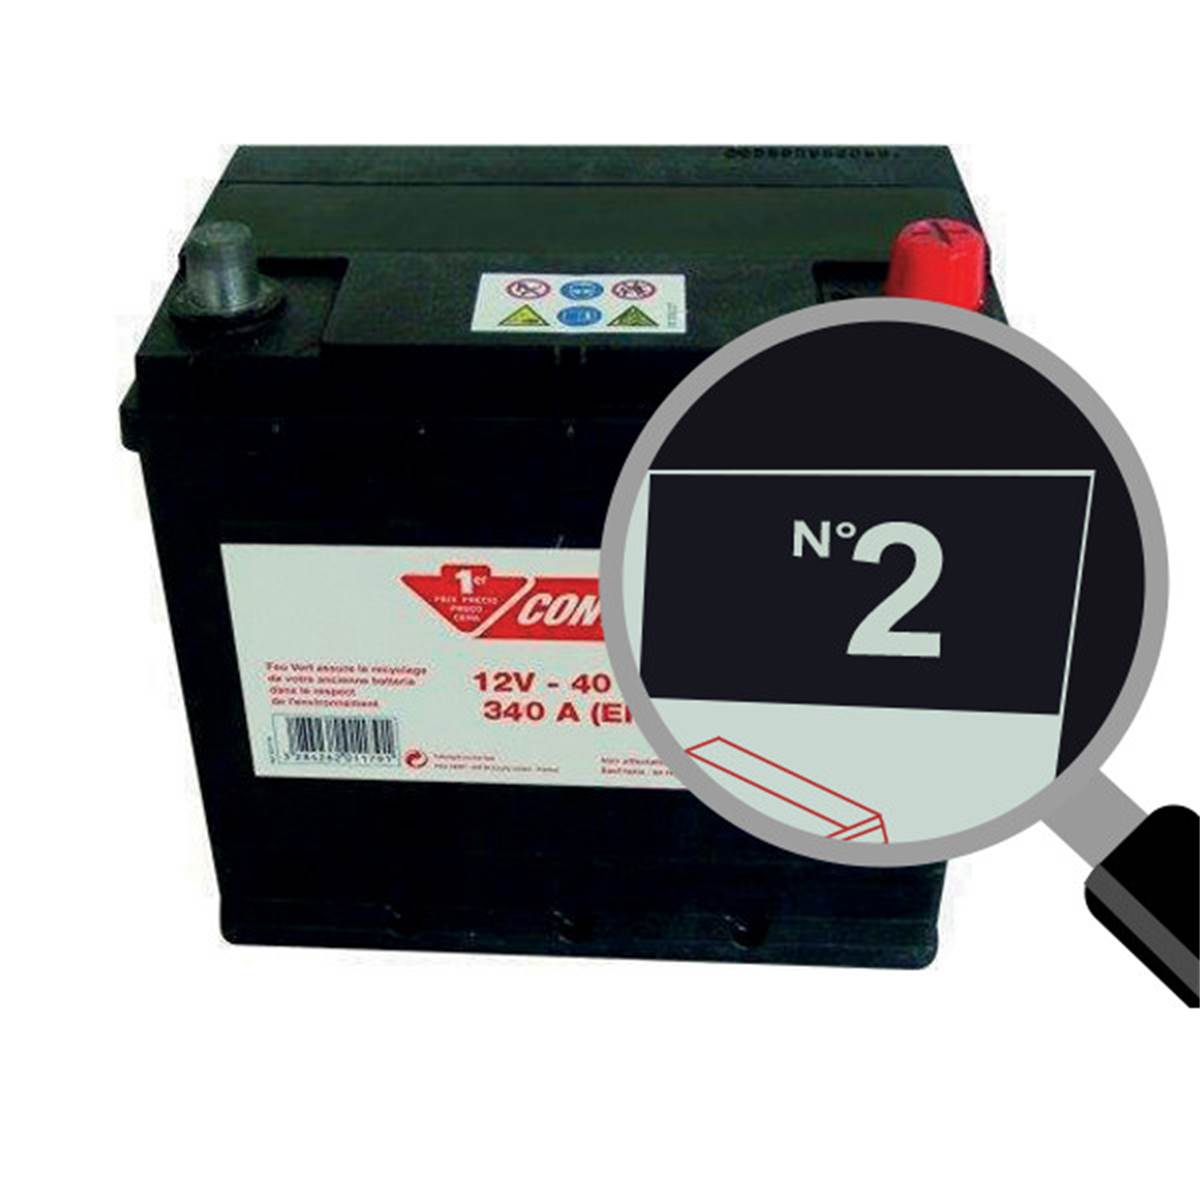 Batterie voiture Contact n°2 - 40Ah / 340A - 12V